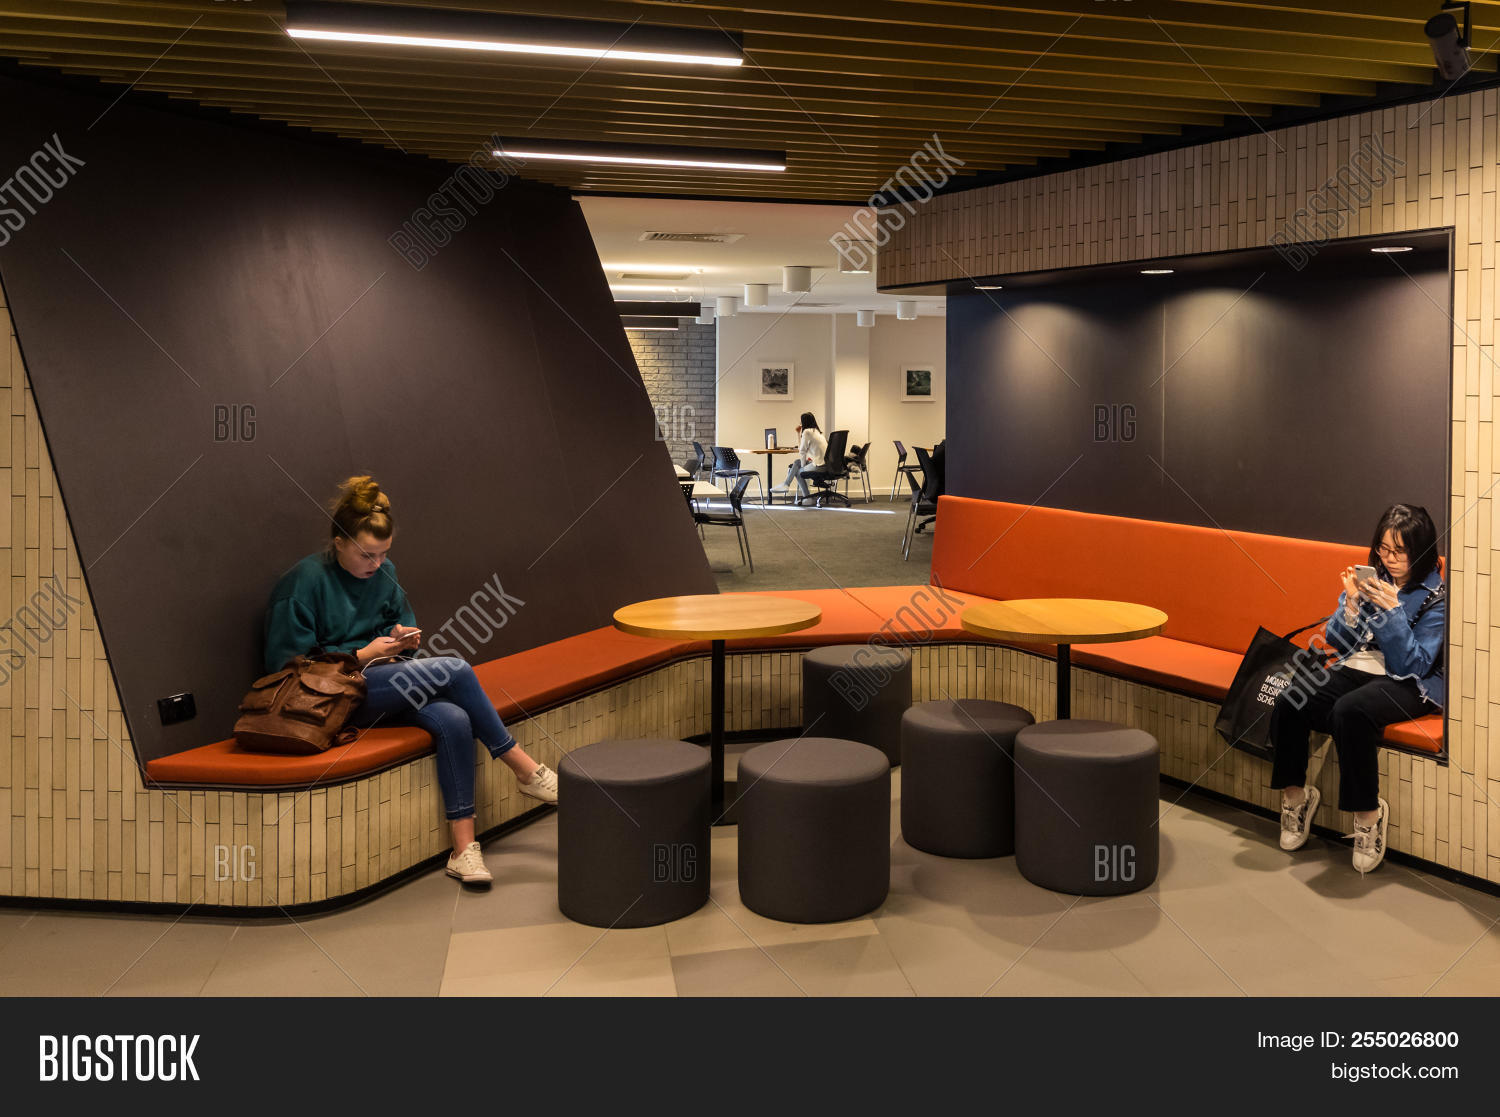 Library Furniture Australia Melbourne Australia Image Photo Free Trial Bigstock